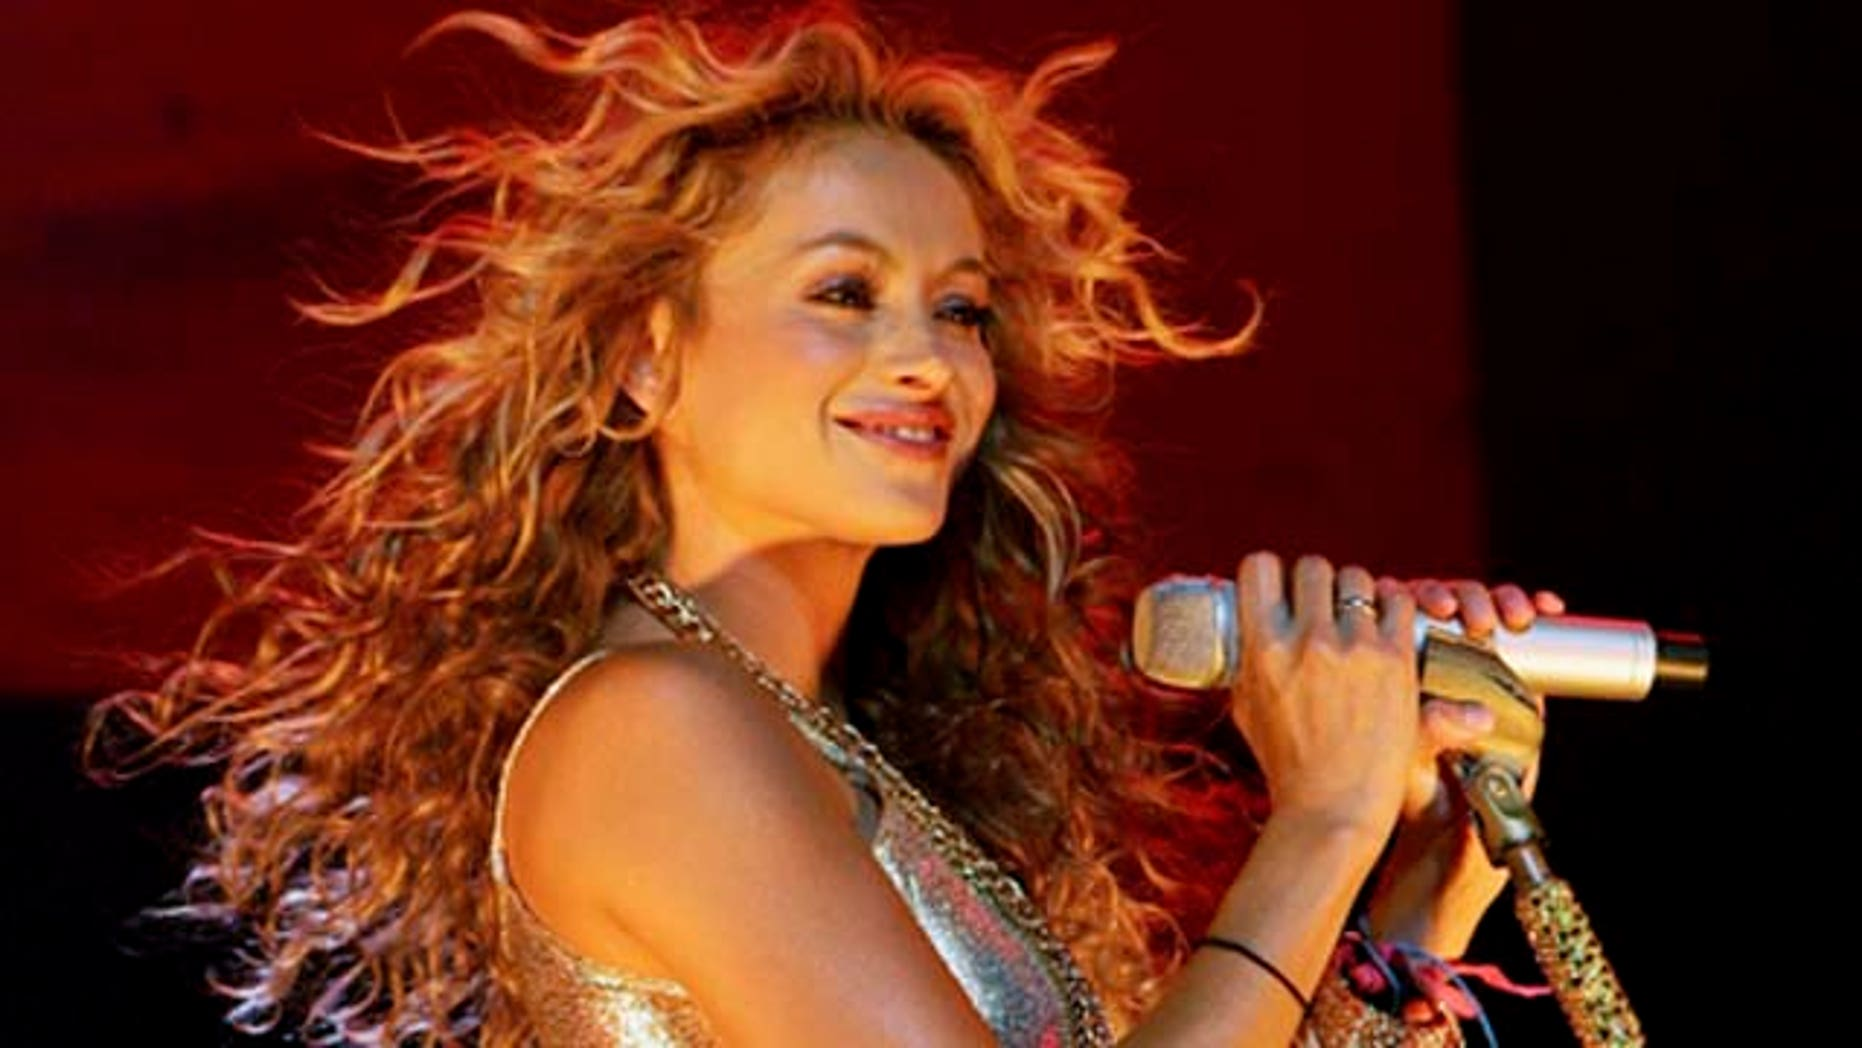 June 29. 2007: Singer Paulina Rubio performs at the Pearl concert theater at the Palms Casino Resort in Las Vegas, Nevada. Rubio's father Enrique Rubio currently is in critical condition in a Mexican hospital.